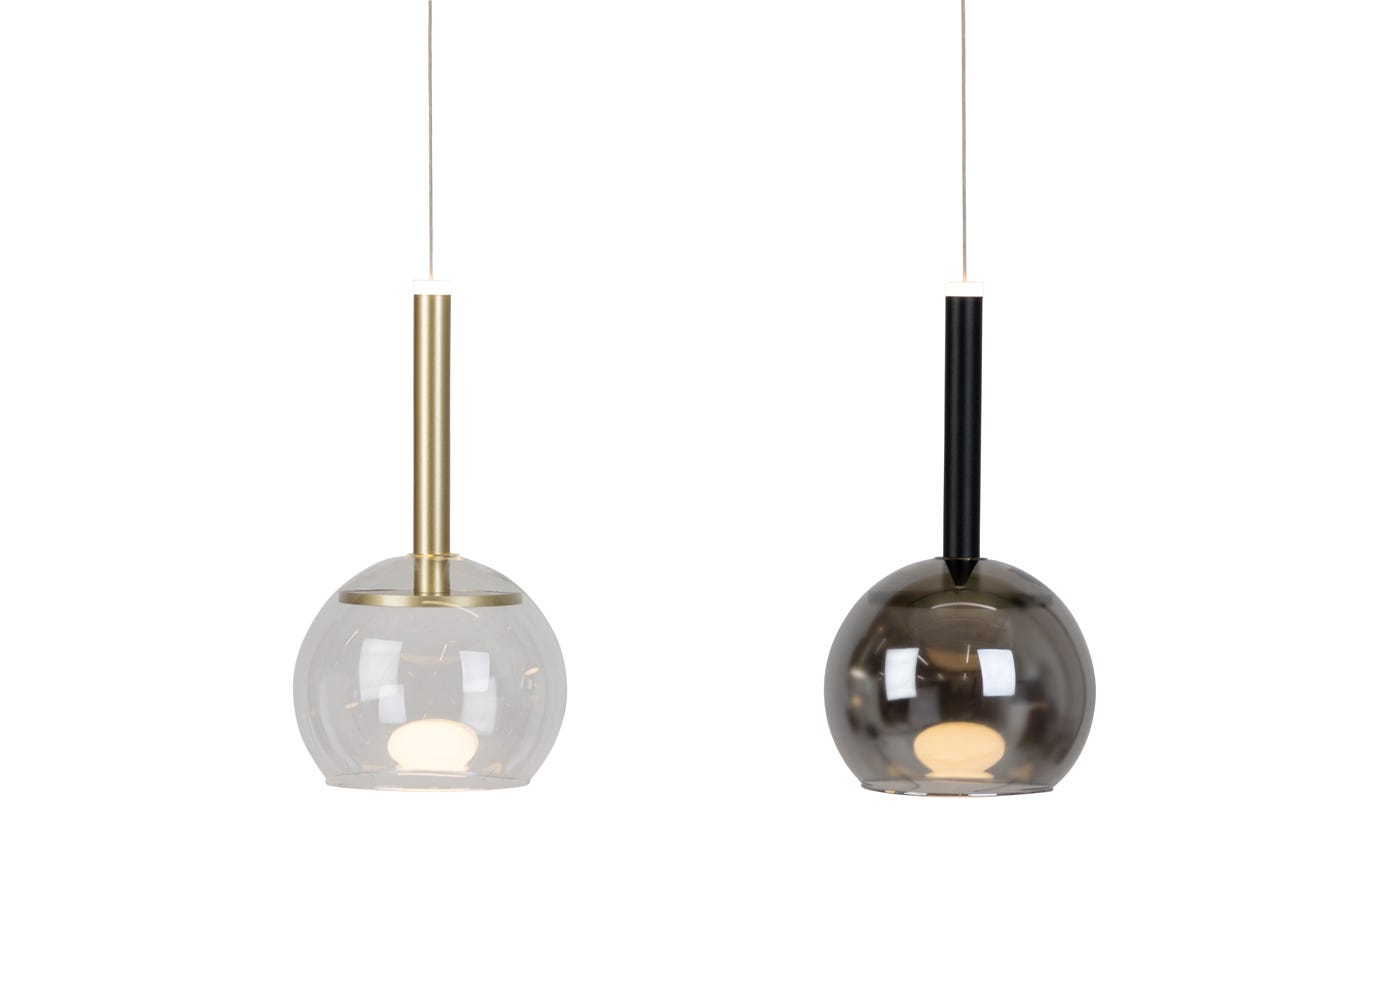 Disc LED Pendant light gold with clear shade & black with smoke shade.